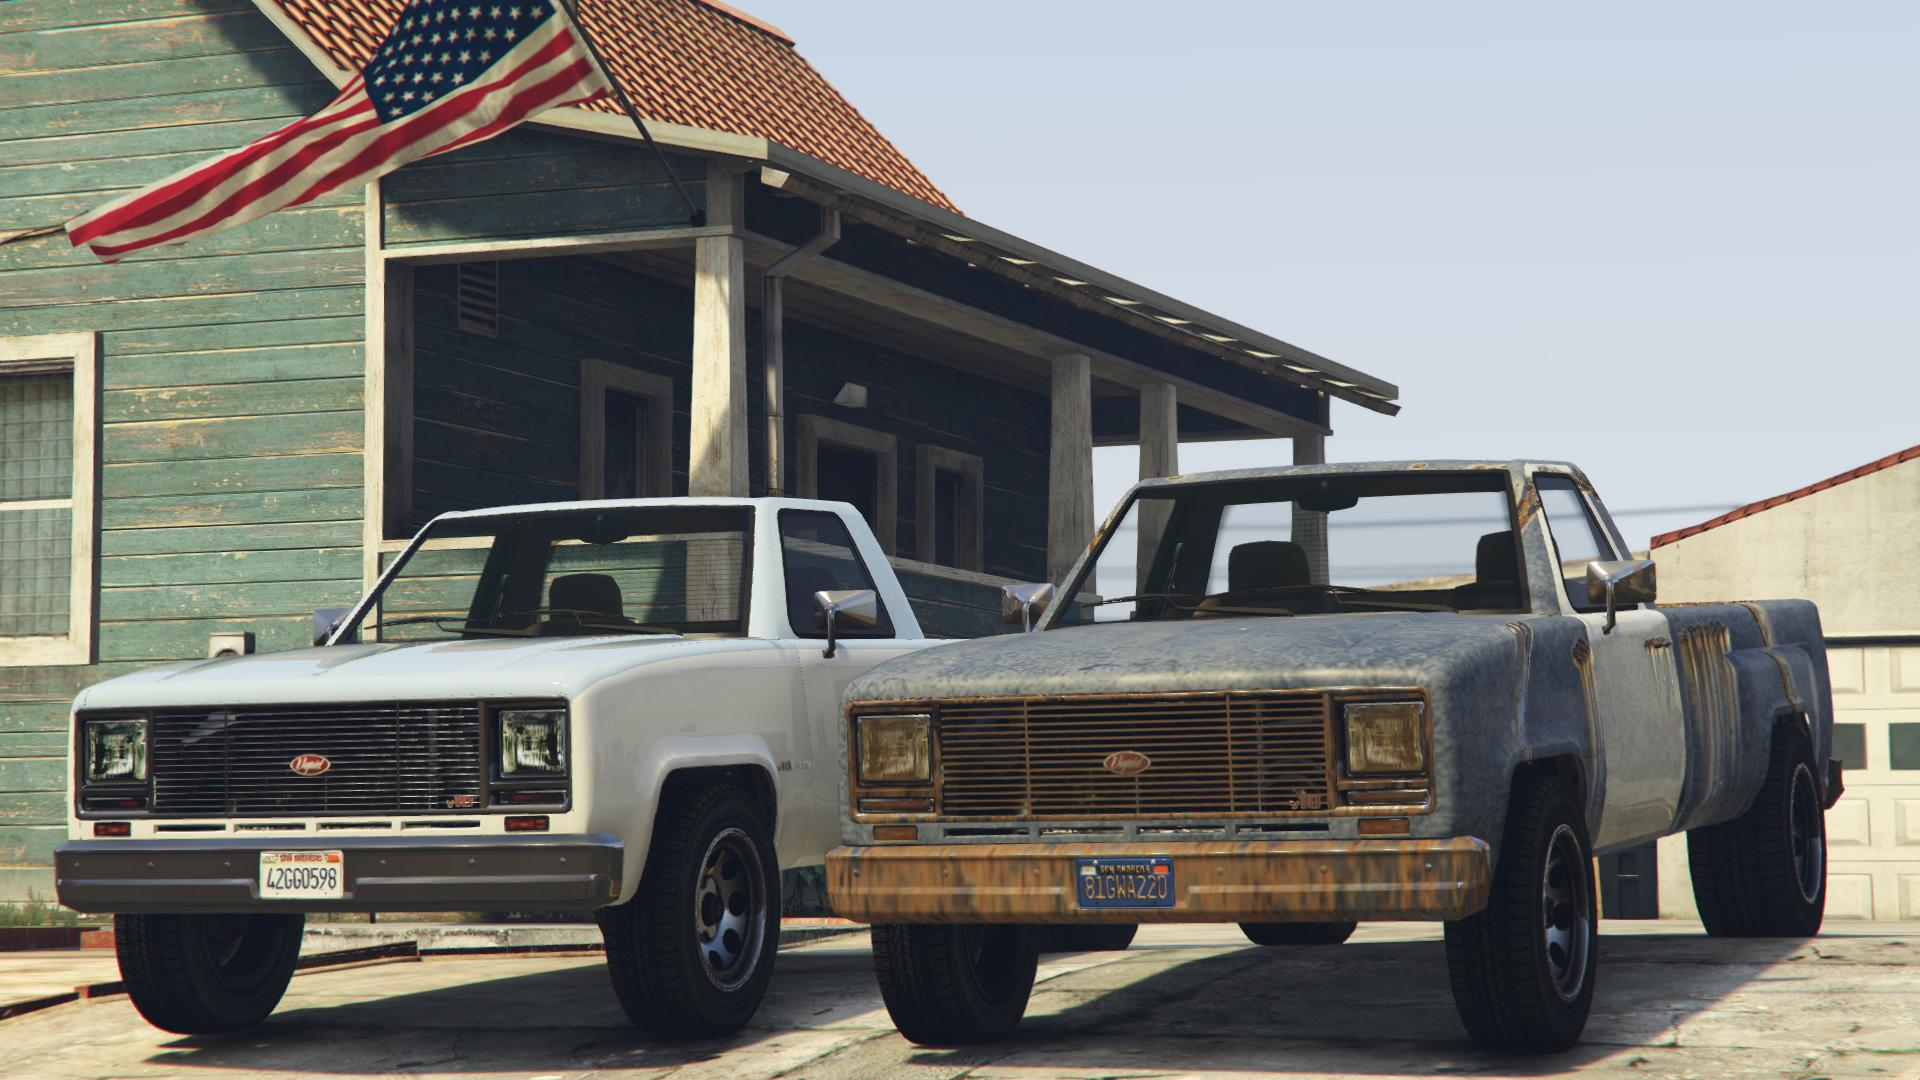 Fort Zancudo Vehicle Improvements Menyoo together with Pfister Suv Pack Add On Replace besides Mammoth patriot in addition 12194 Musorovoz Iz Gta 4 furthermore Sentinel Custom Mw Add On. on mammoth patriot 2 gta 5